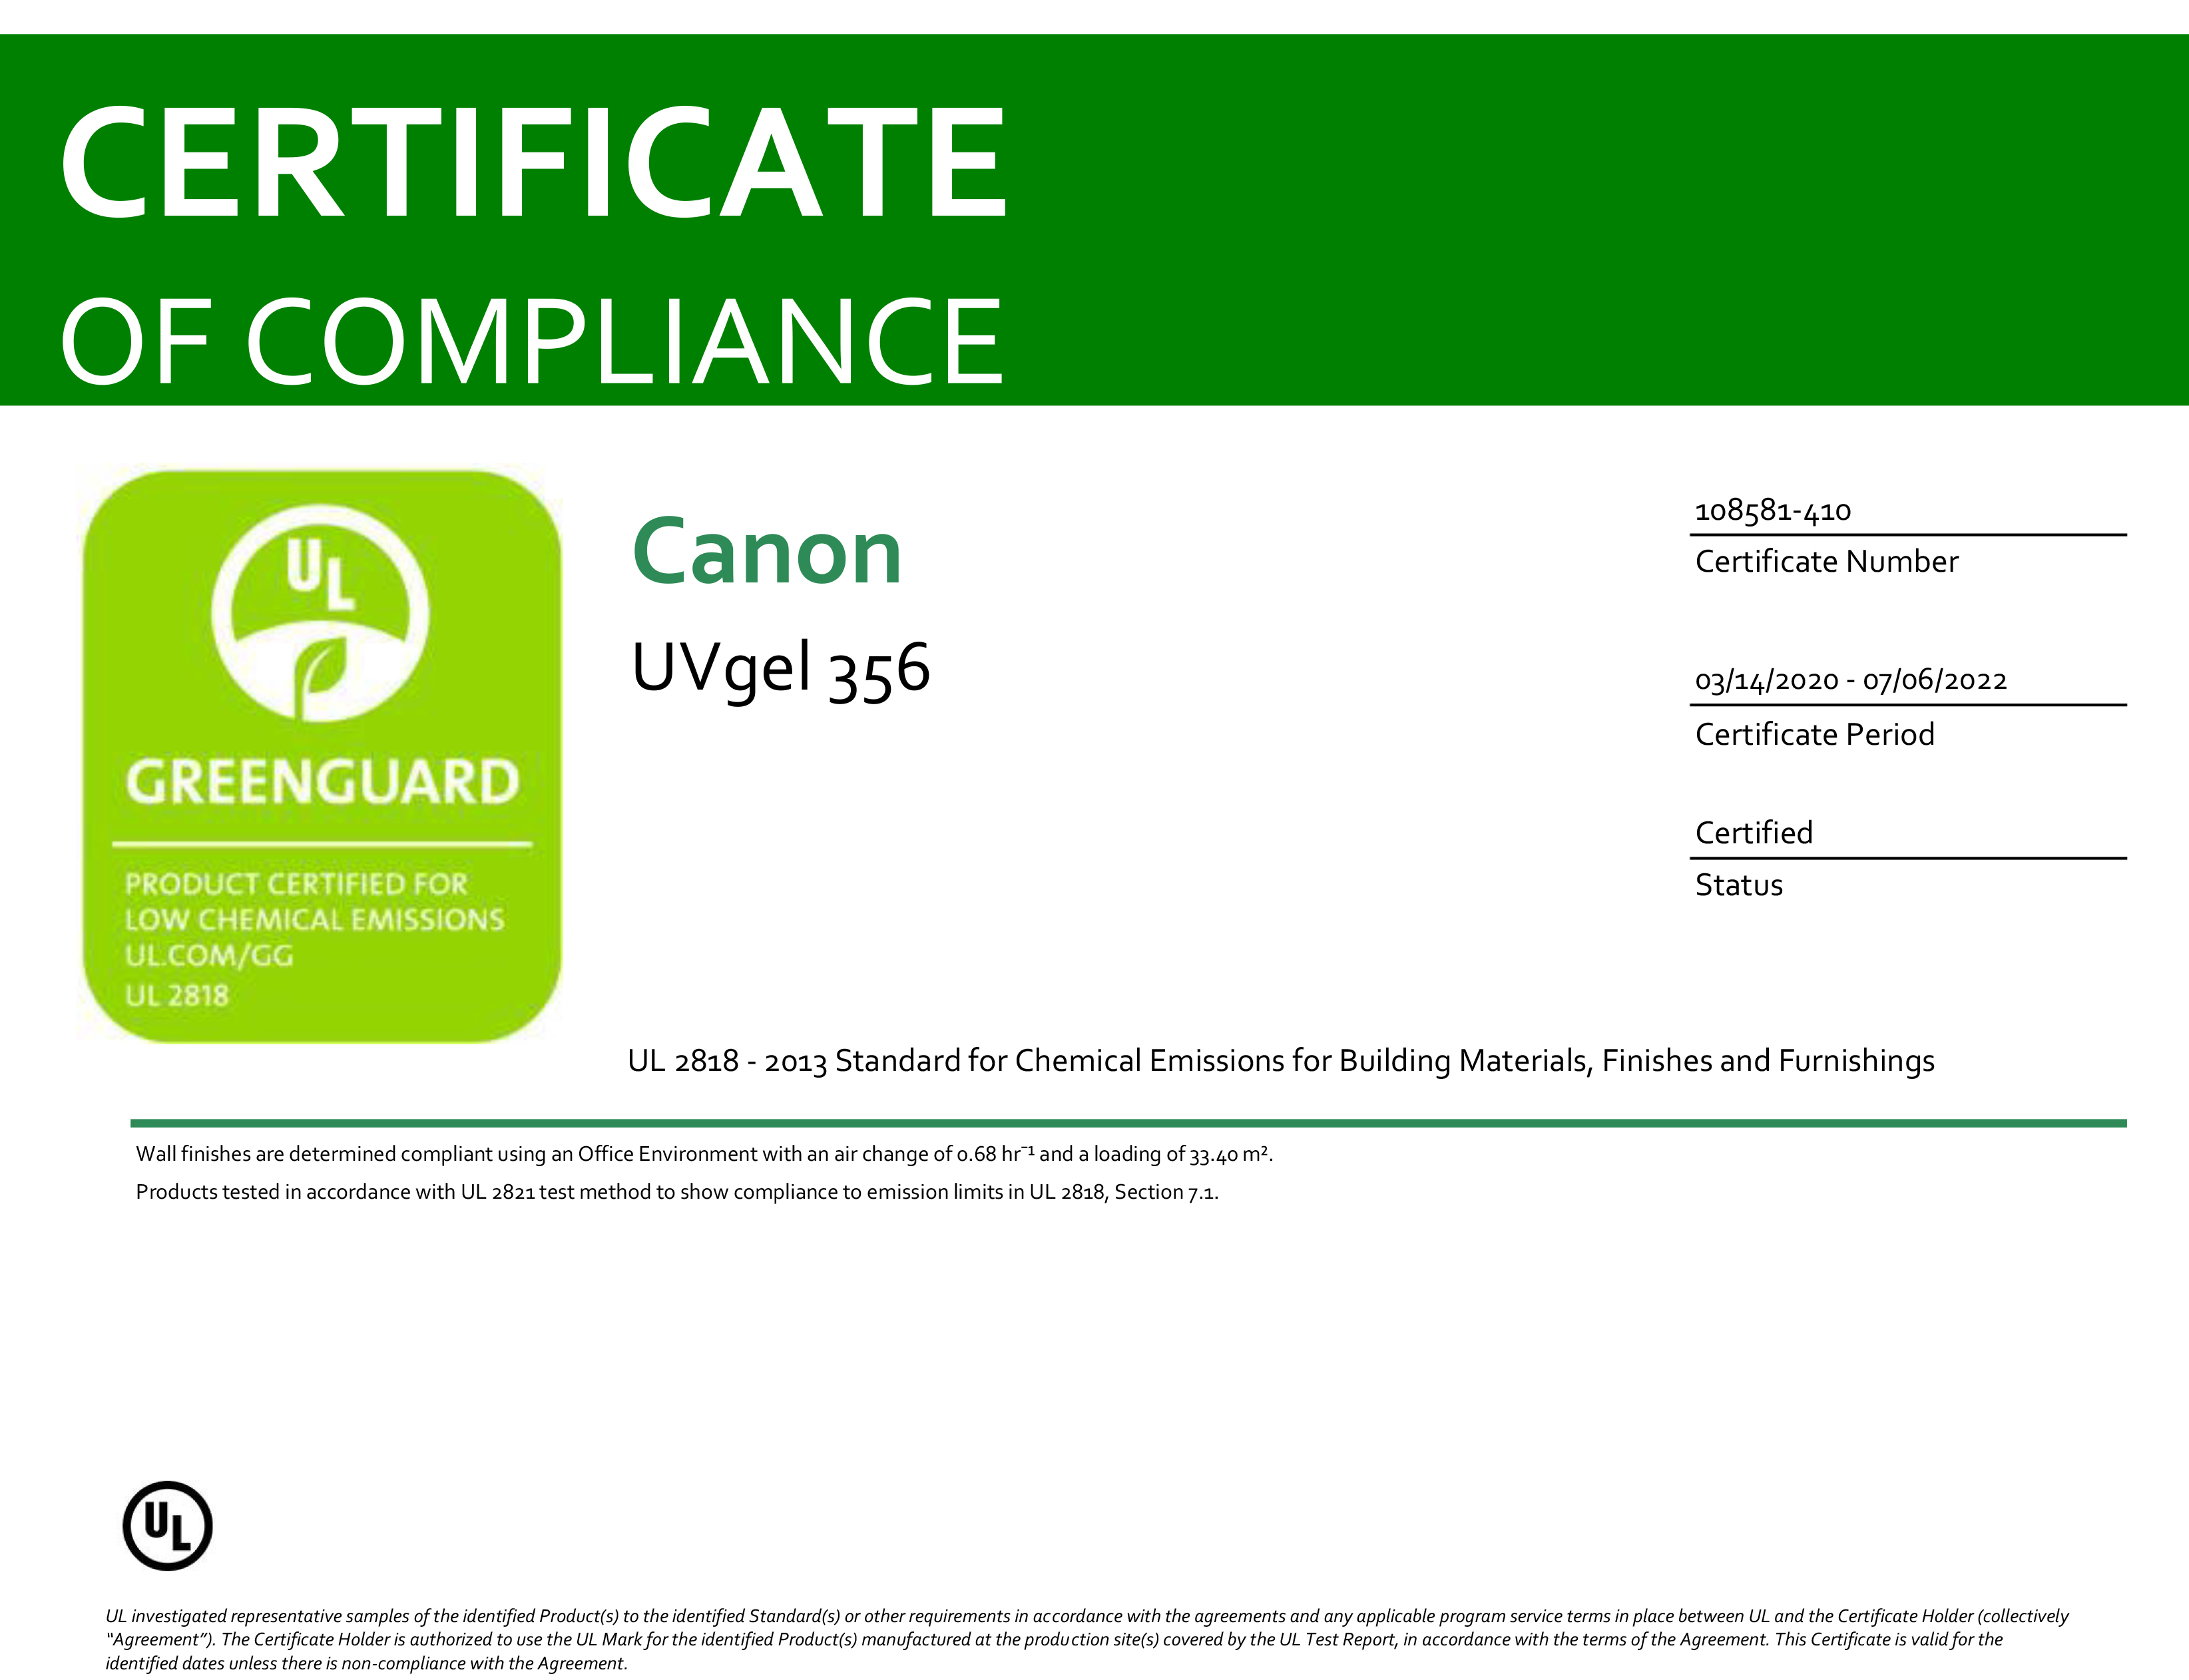 GREENGUARD Certification-1